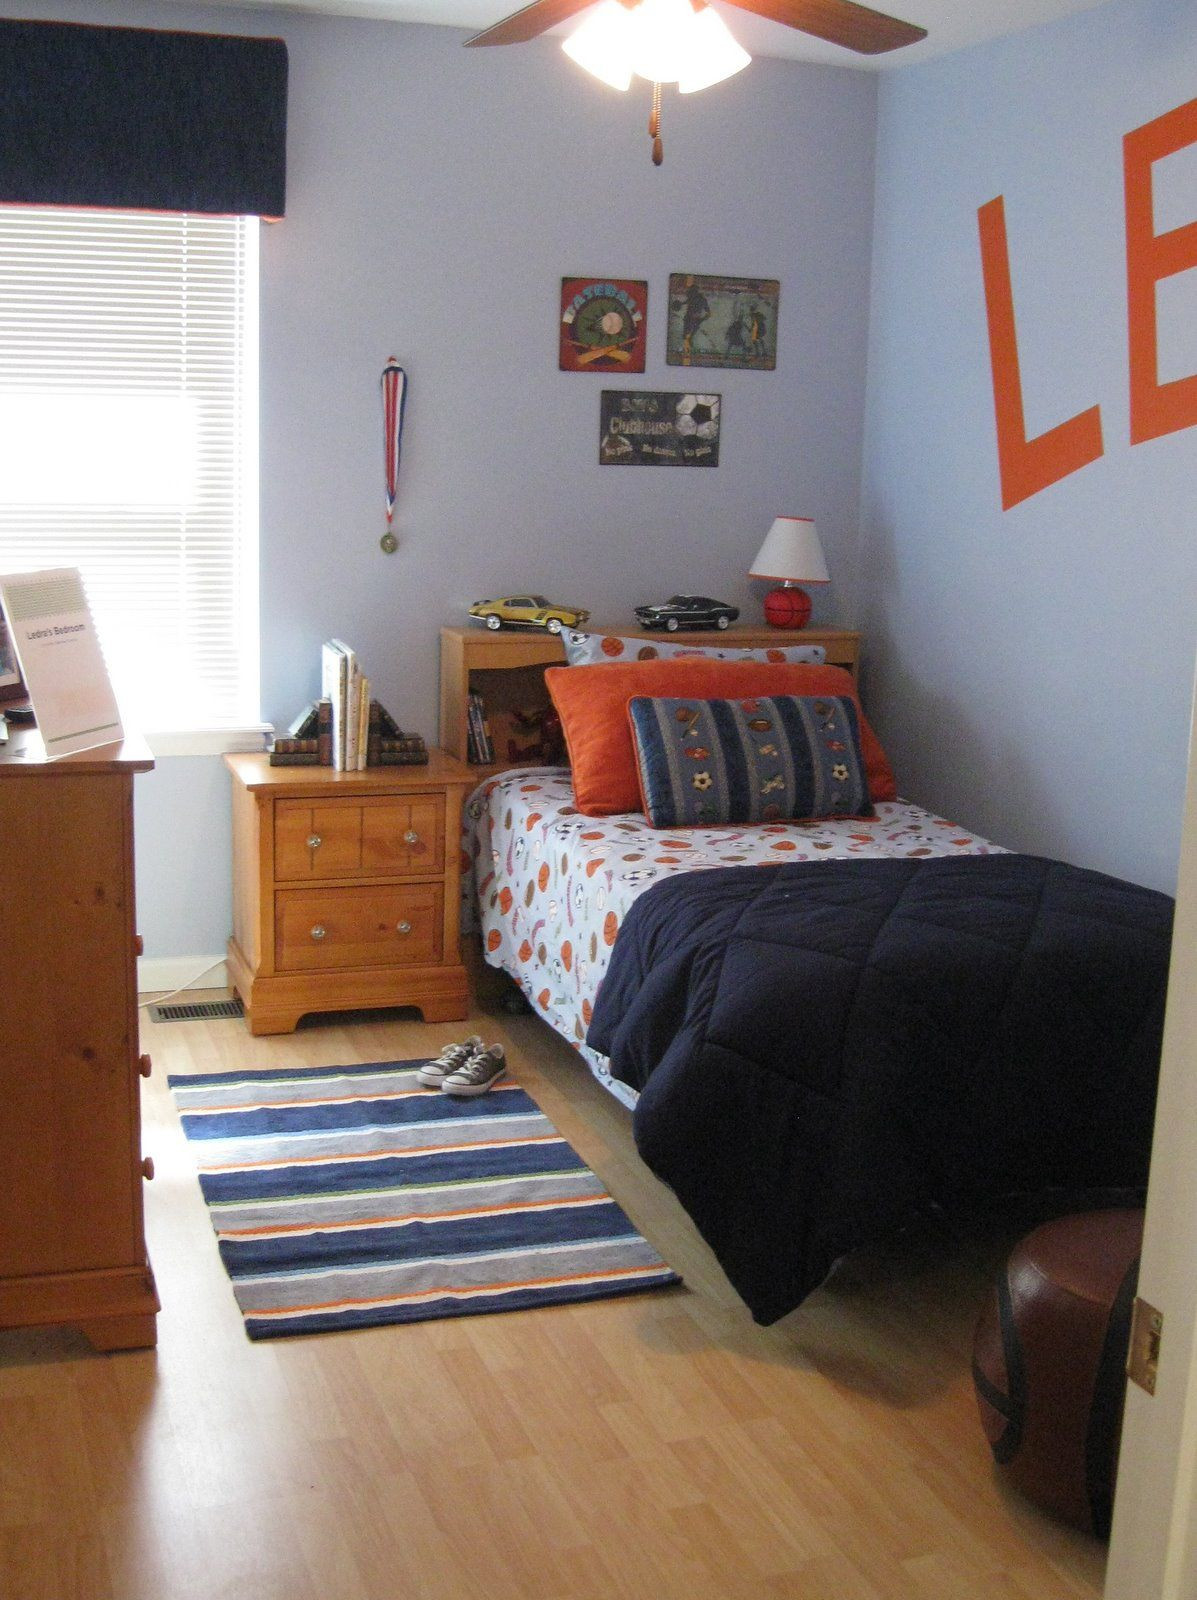 hardwood floors in bedroom or carpet of using a carpet to decorate the bedroom floor is not so attractive in using a carpet to decorate the bedroom floor is not so attractive for some people they prefer to use wood or tile floors that blend with the house